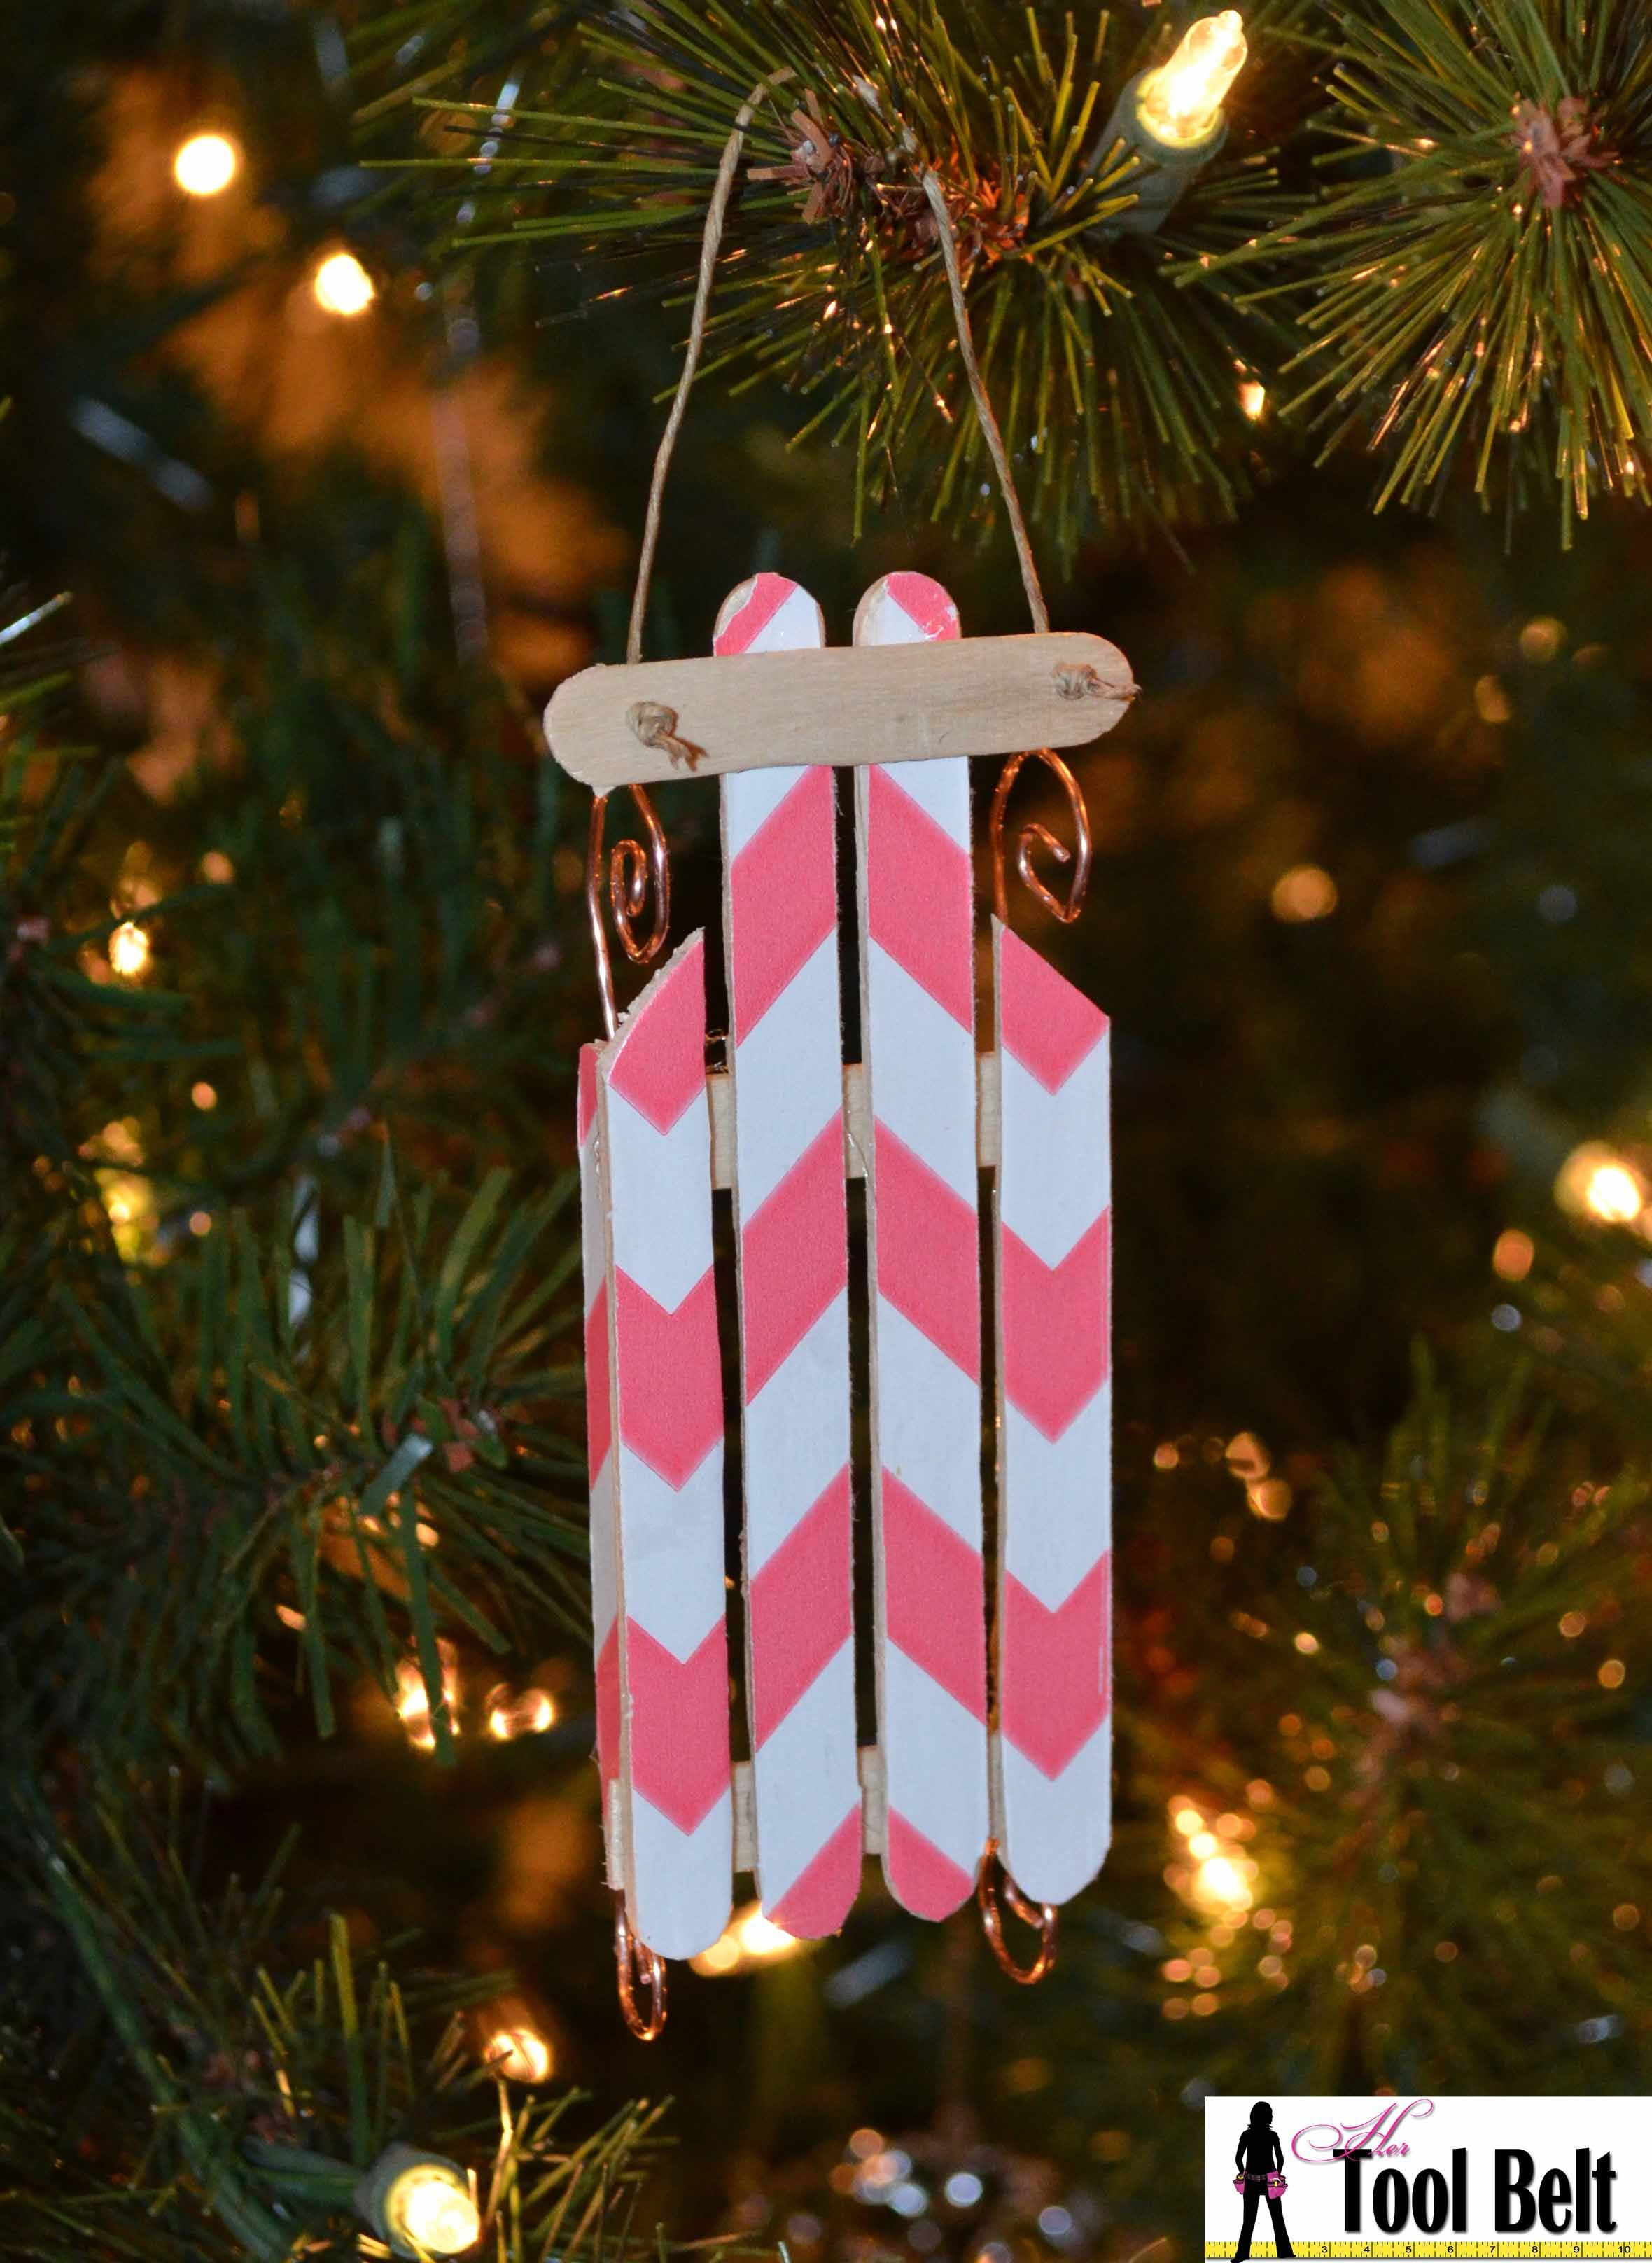 Th day of christmas wood sled ornament ornament woods and